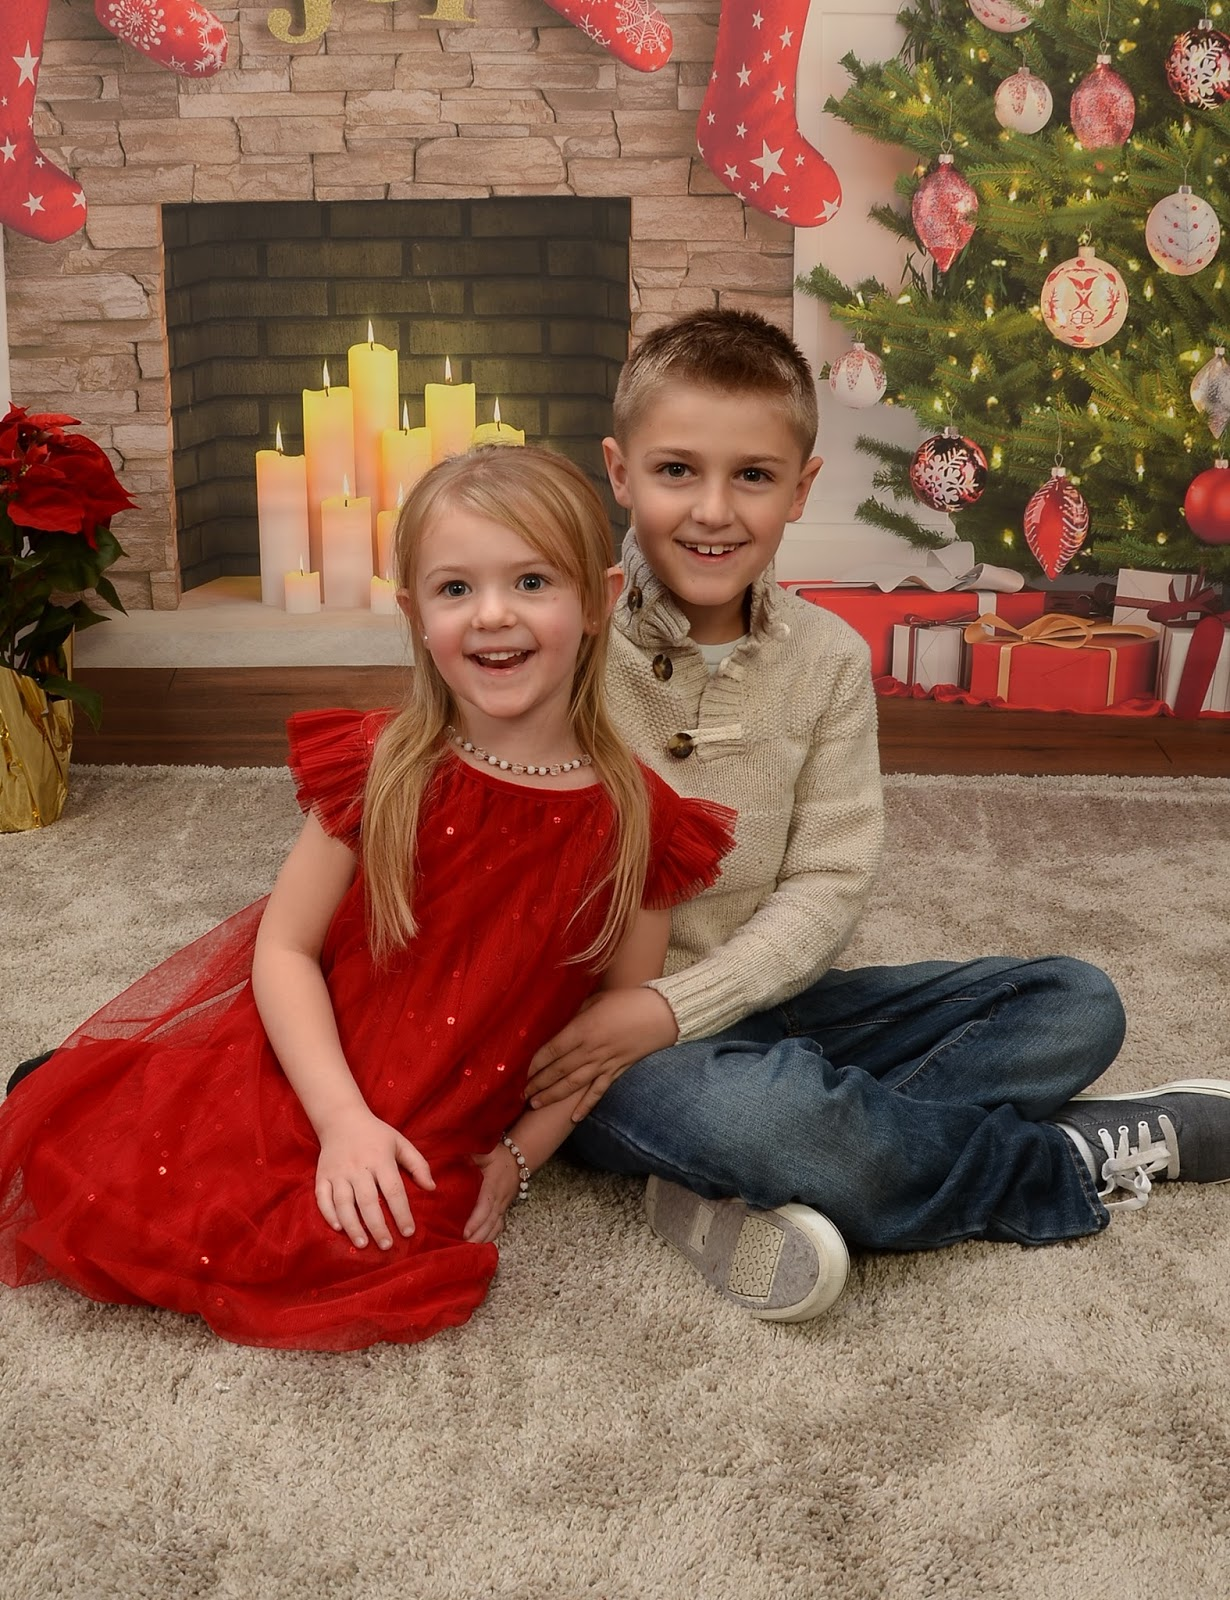 The Perfect Gift for Family #PortraitInnovations [ad] - We